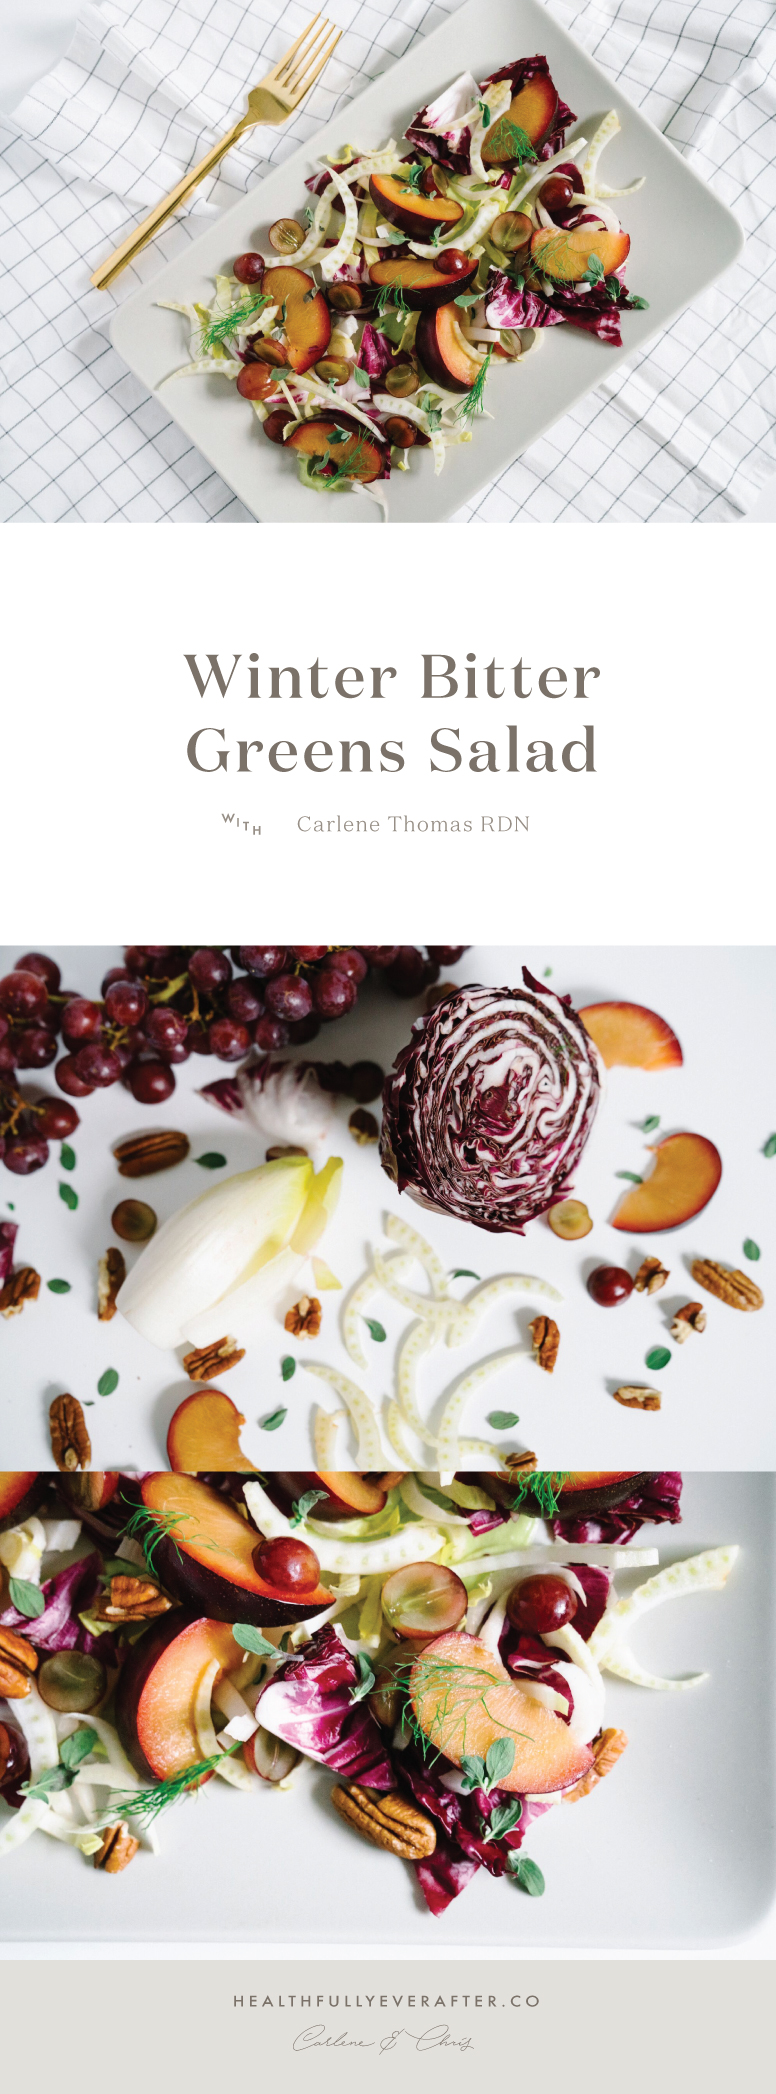 winter bitter greens salad